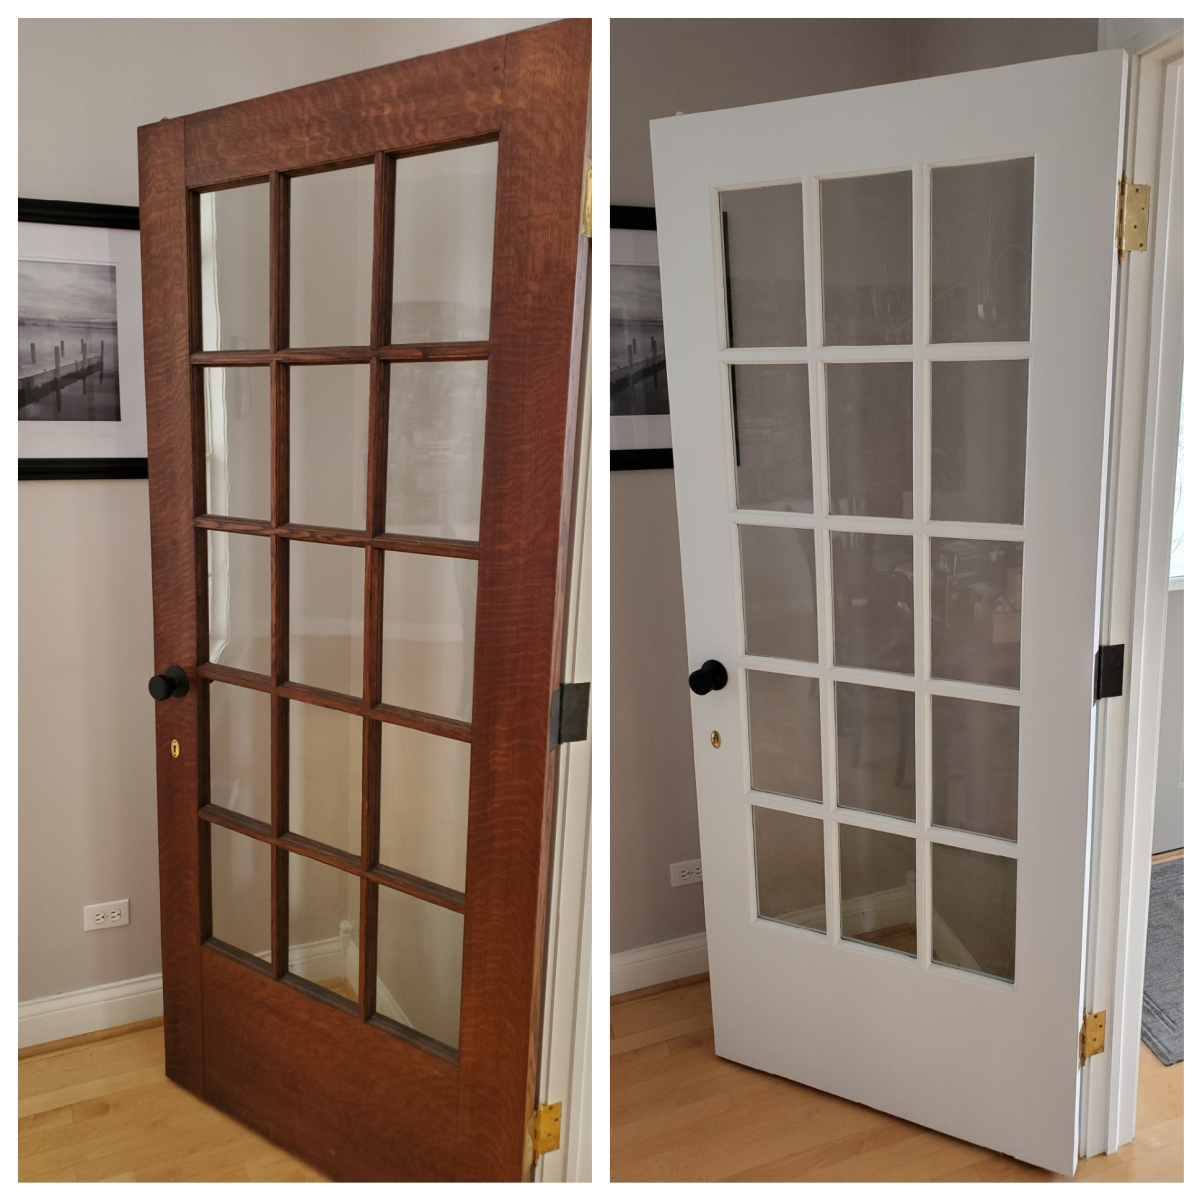 Tips and Tricks for Painting French Doors the Easy Way